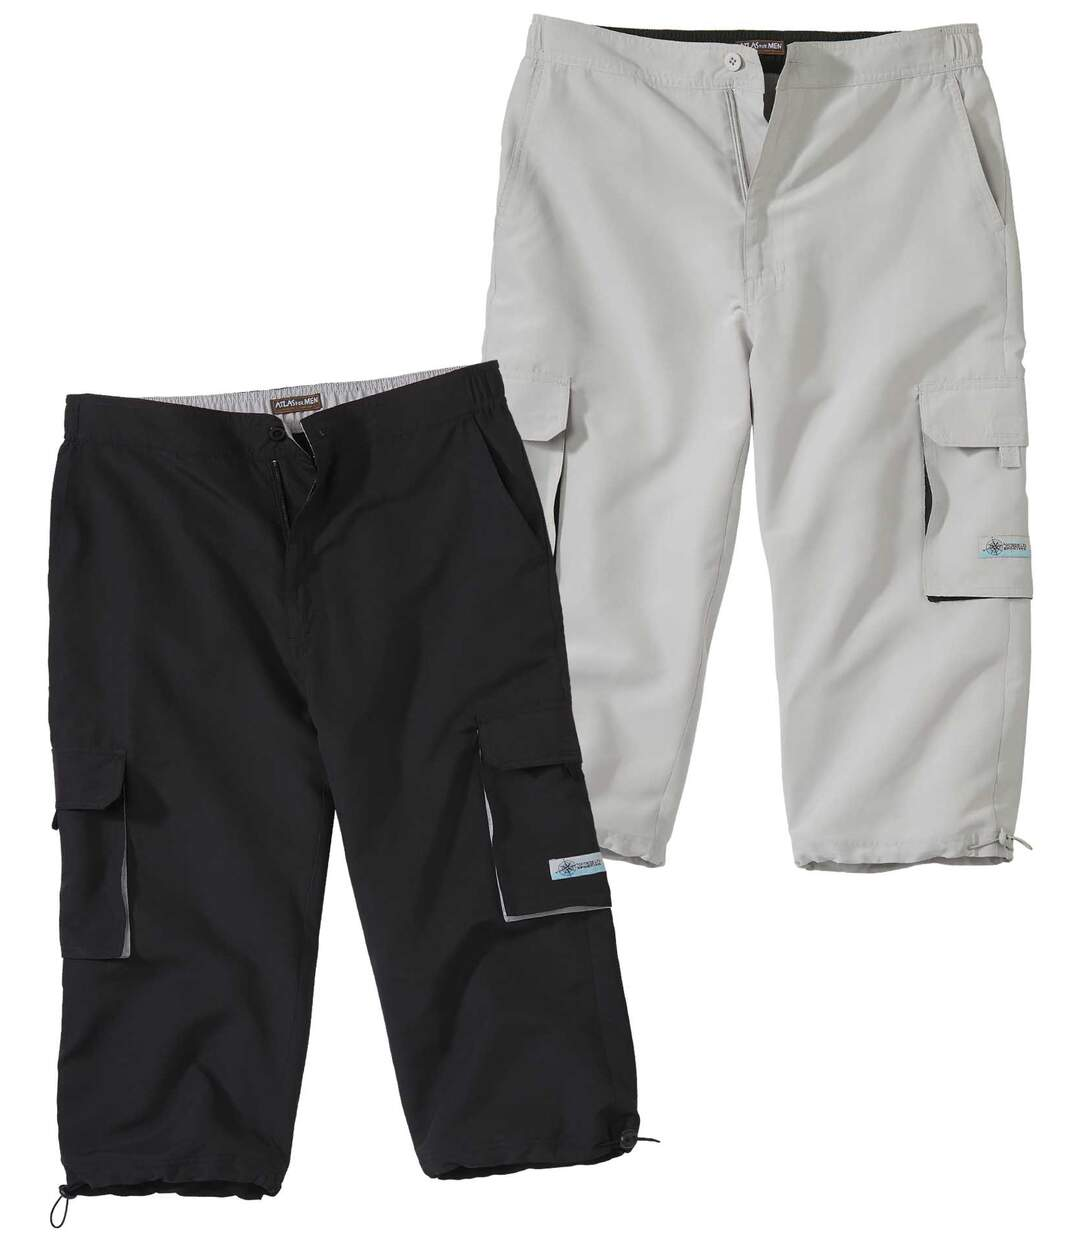 Pack of 2 Men's Cropped Cargo Trousers - Black Grey